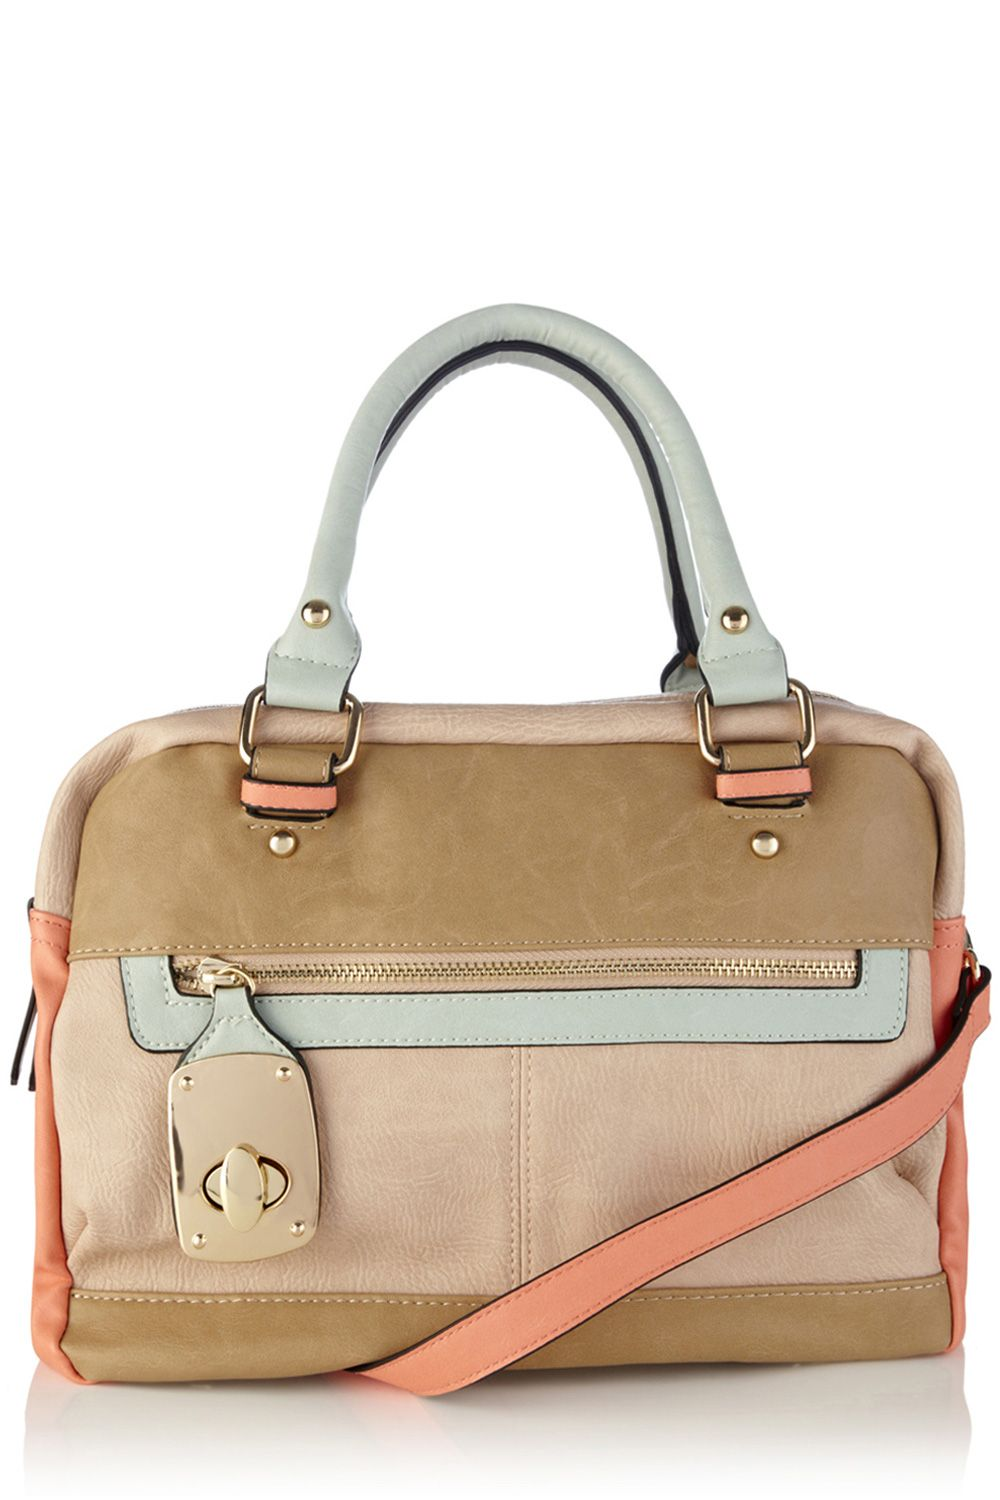 Danielle lock double compartment bag